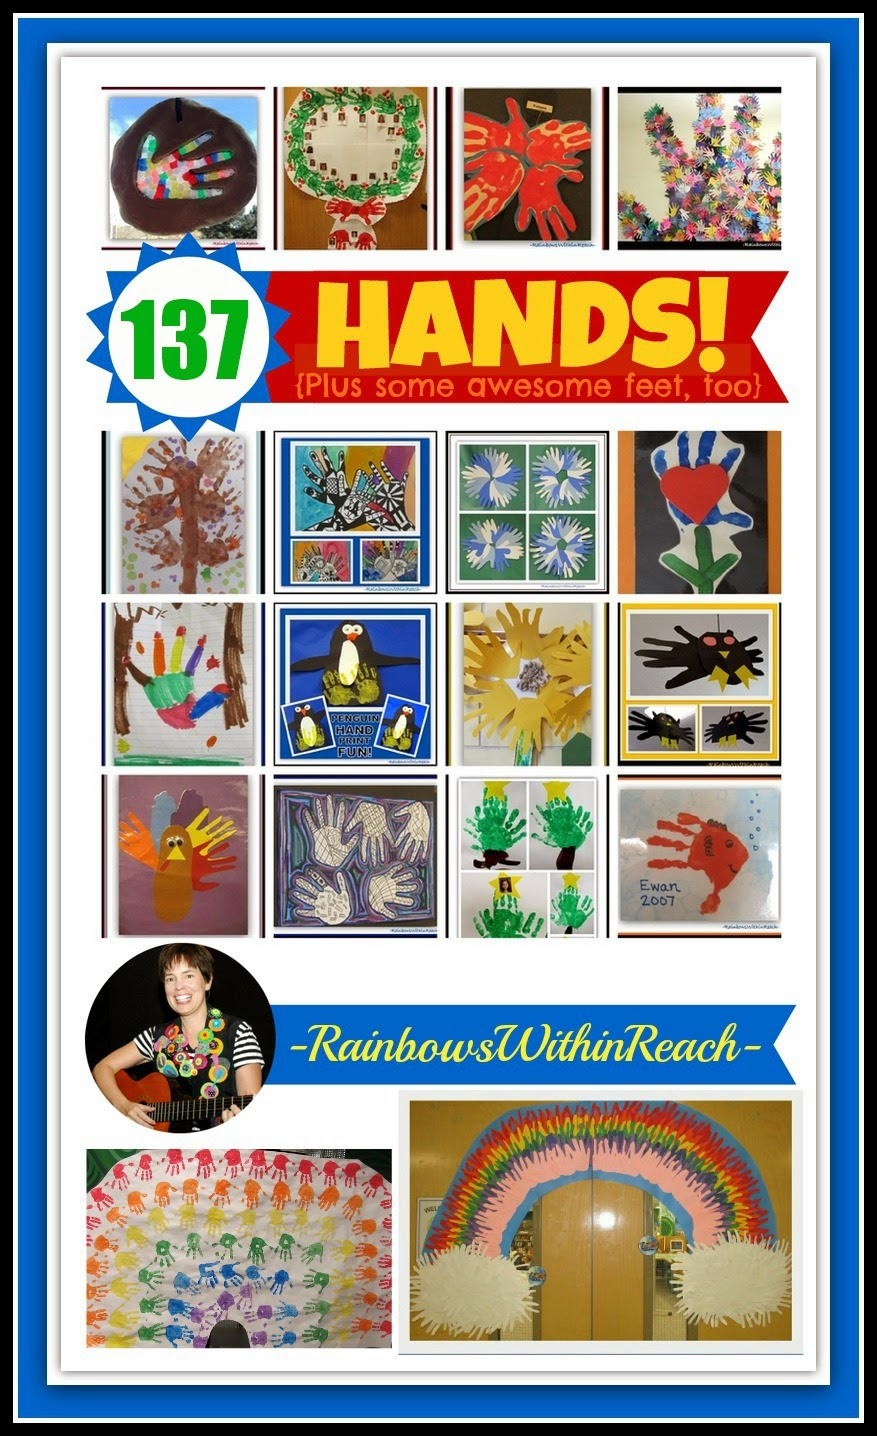 135+++ Handprint Projects